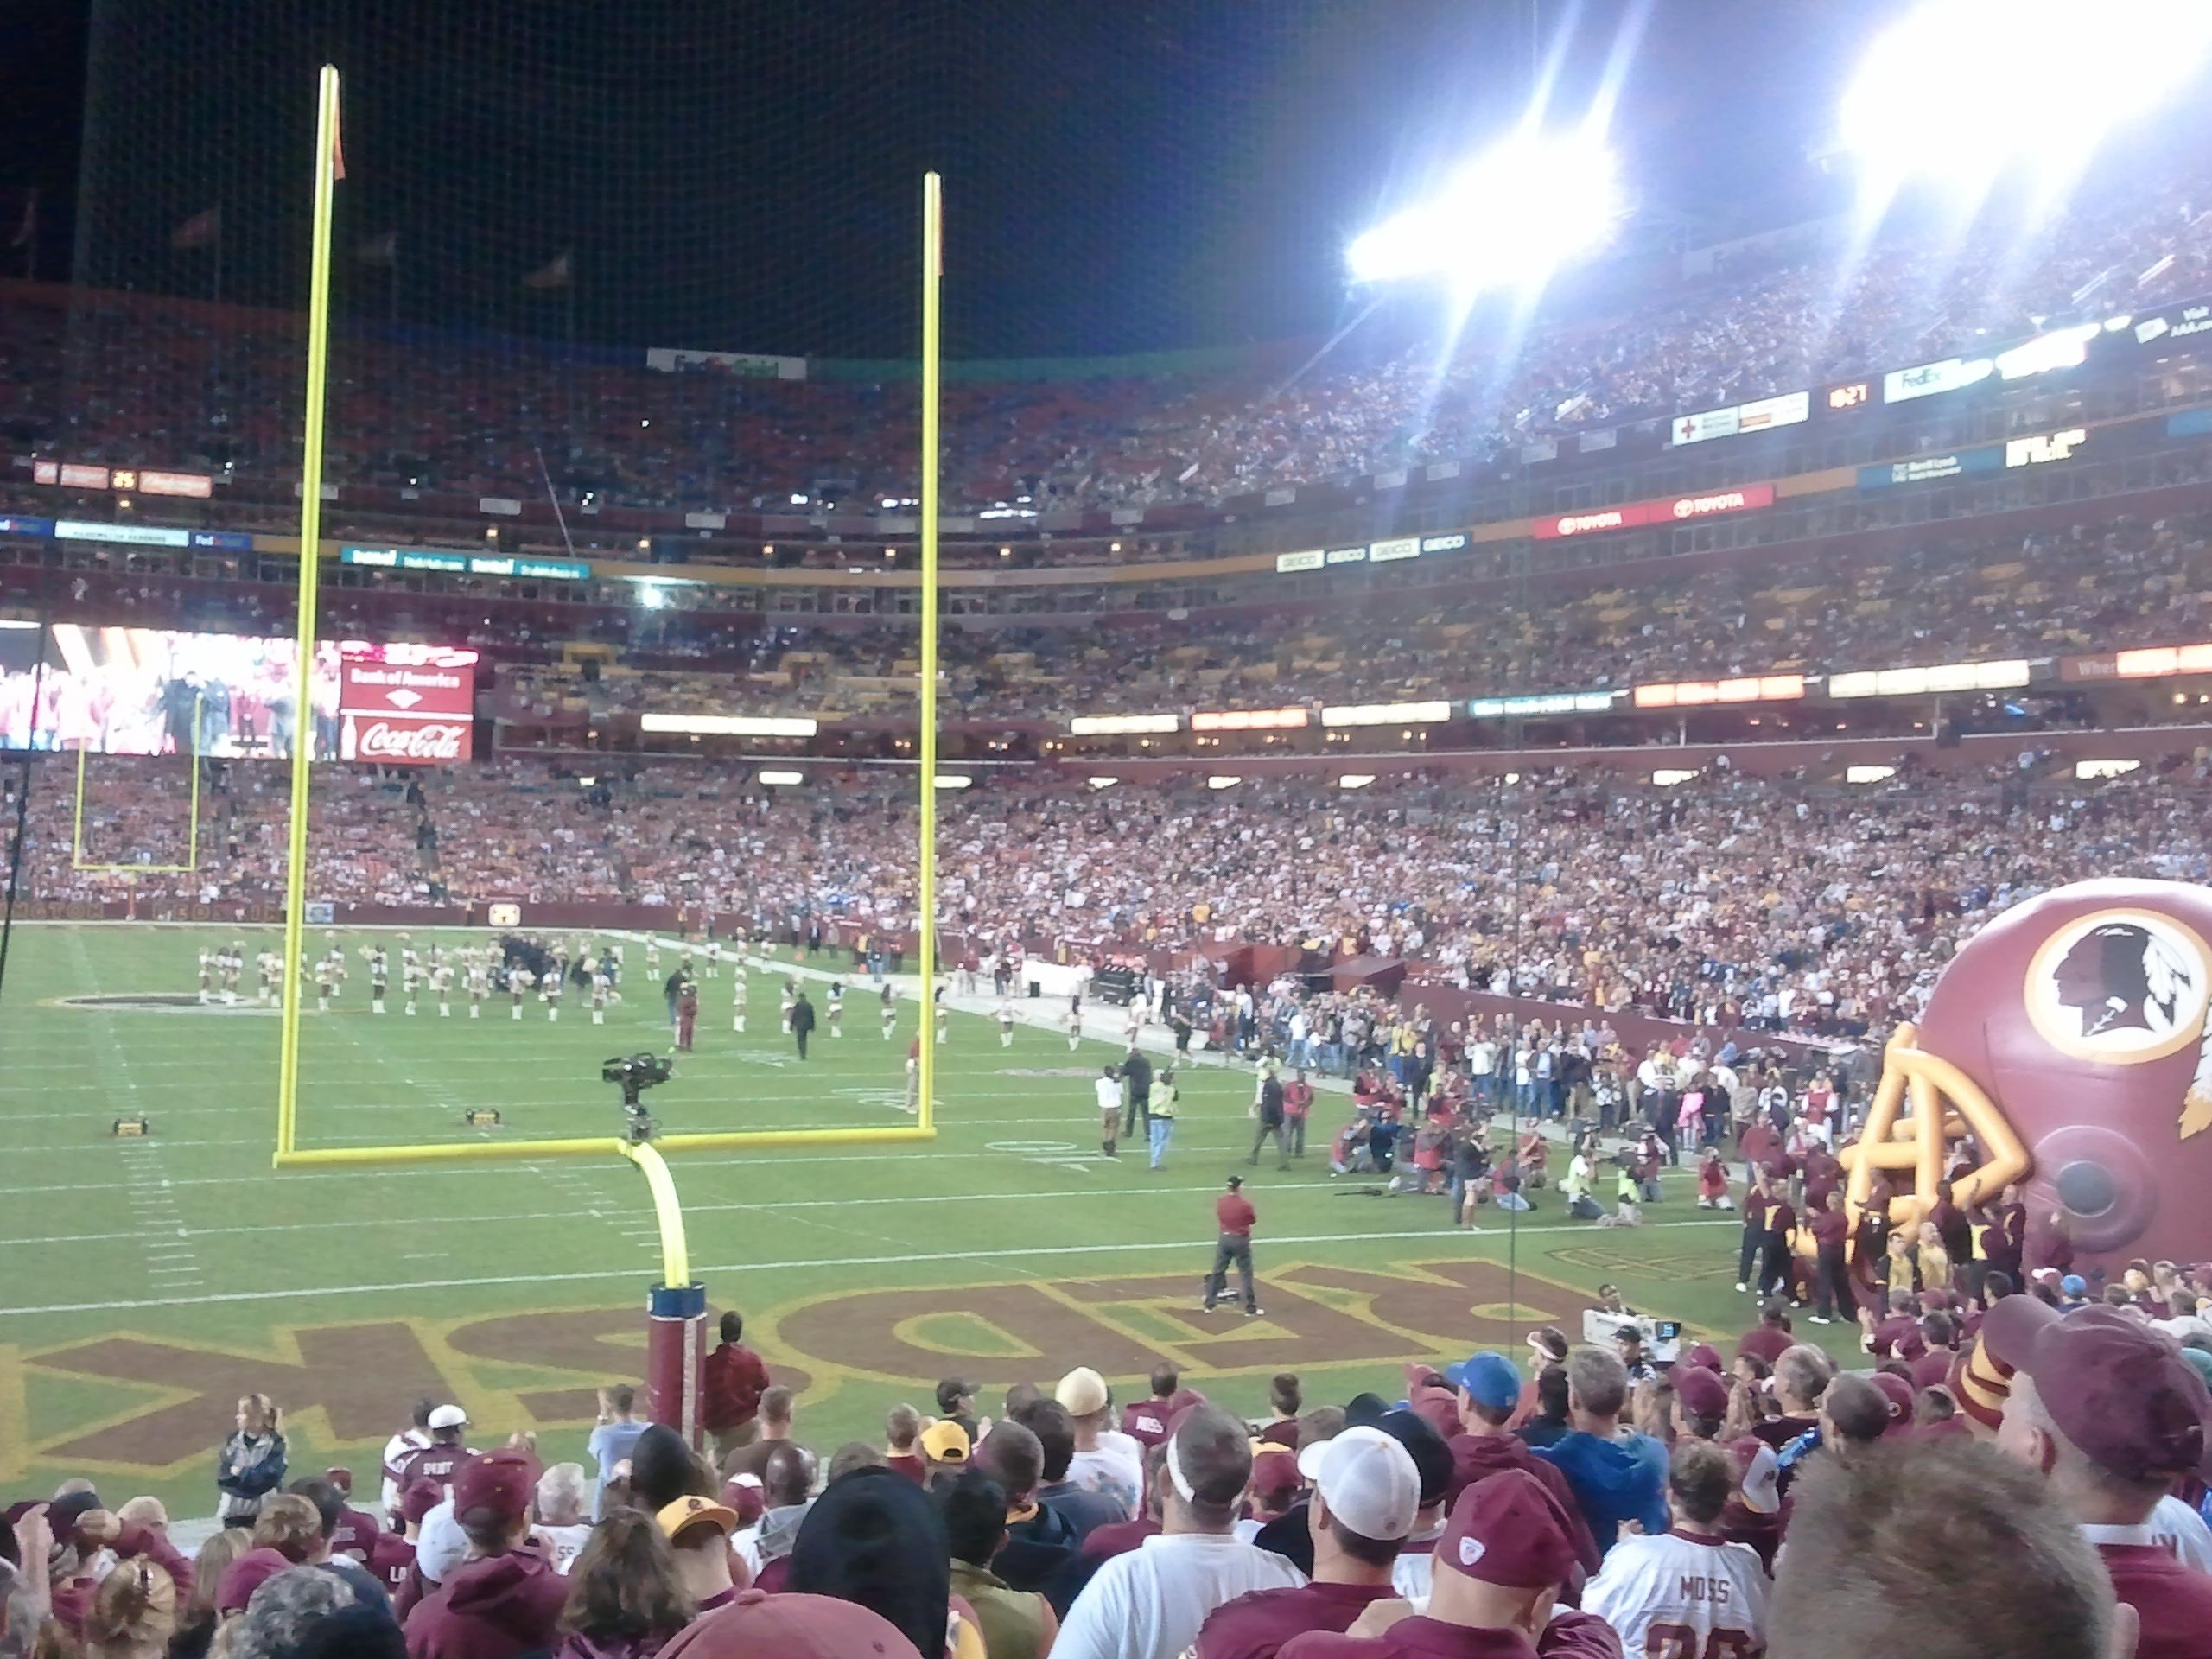 FedEx Field Section 111 Row 16 Seat 22